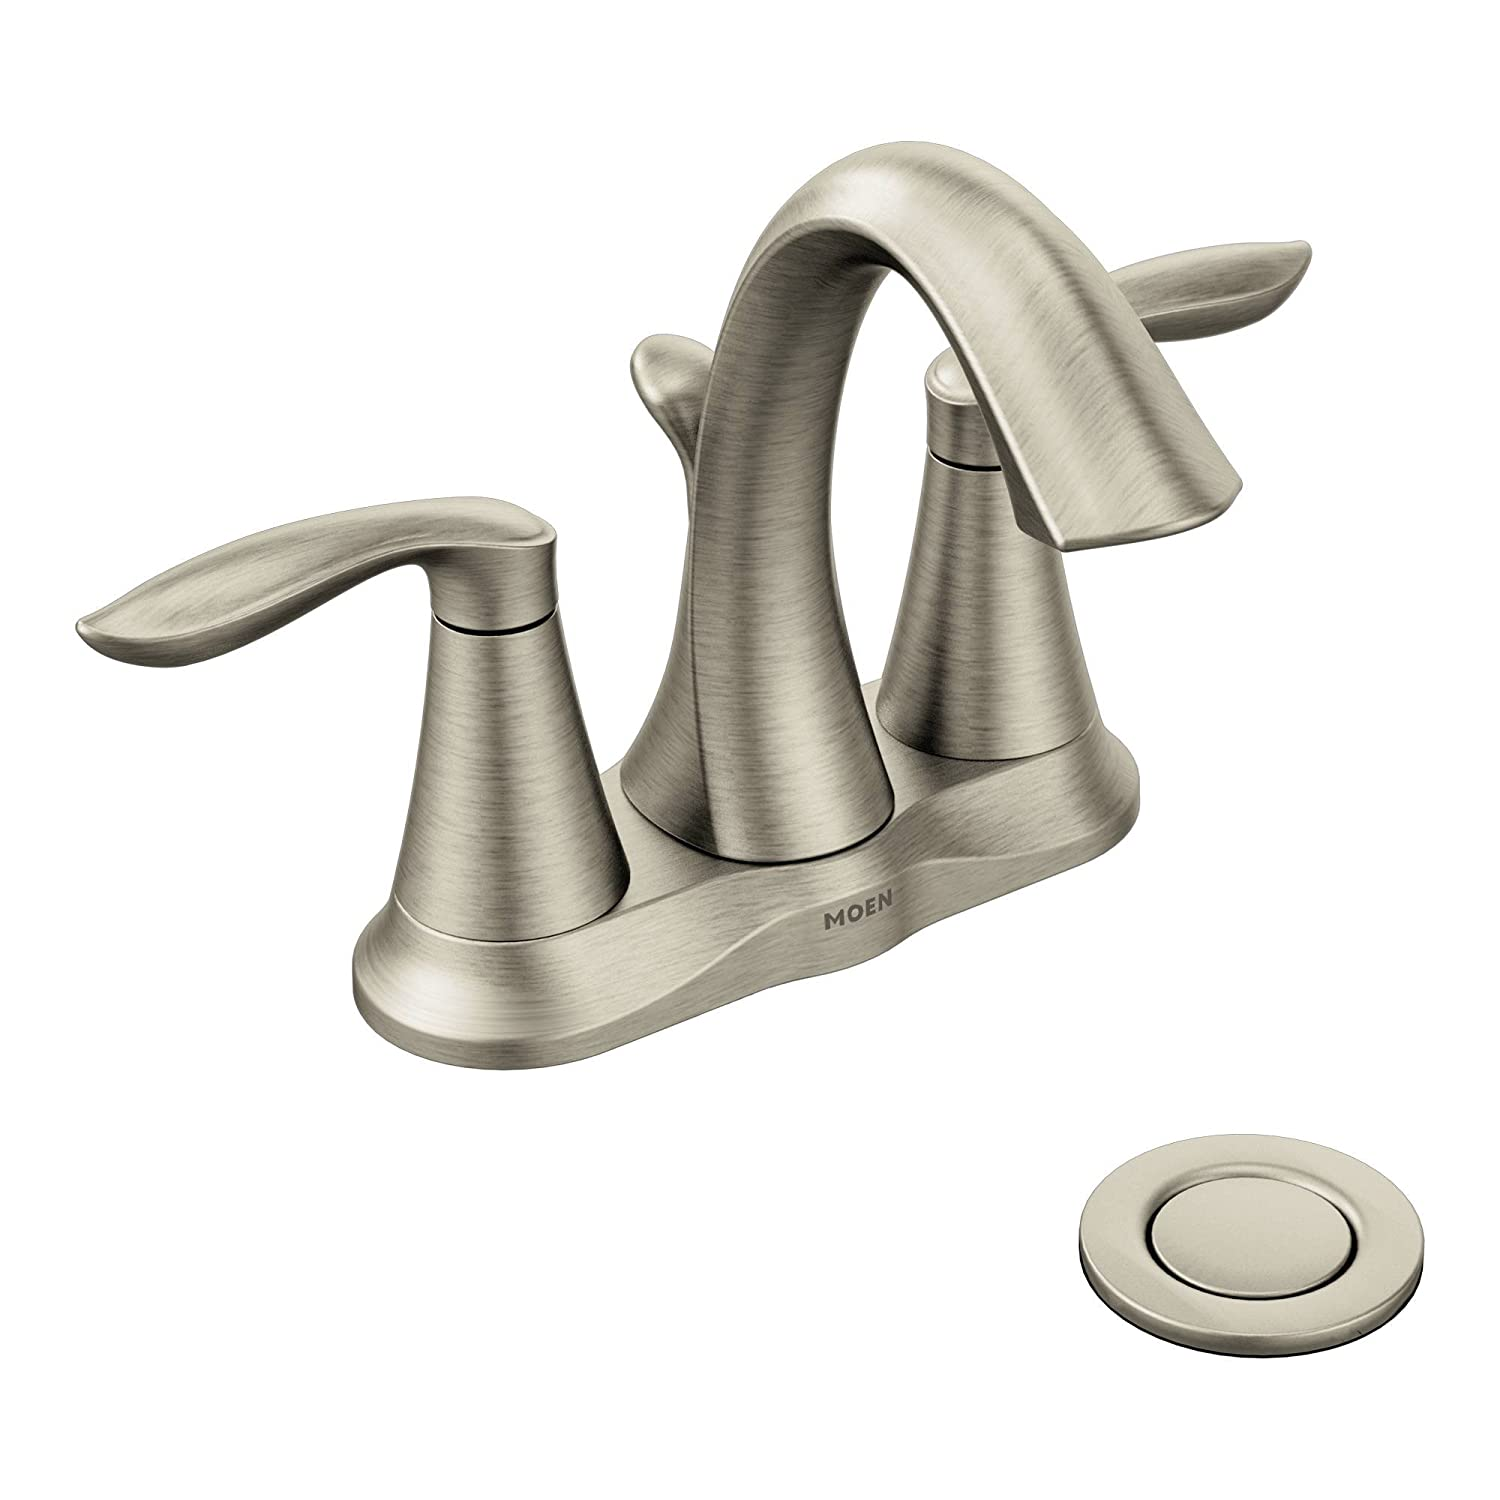 Moen Eva Two-Handle Centerset Bathroom Faucet with Drain Assembly ...